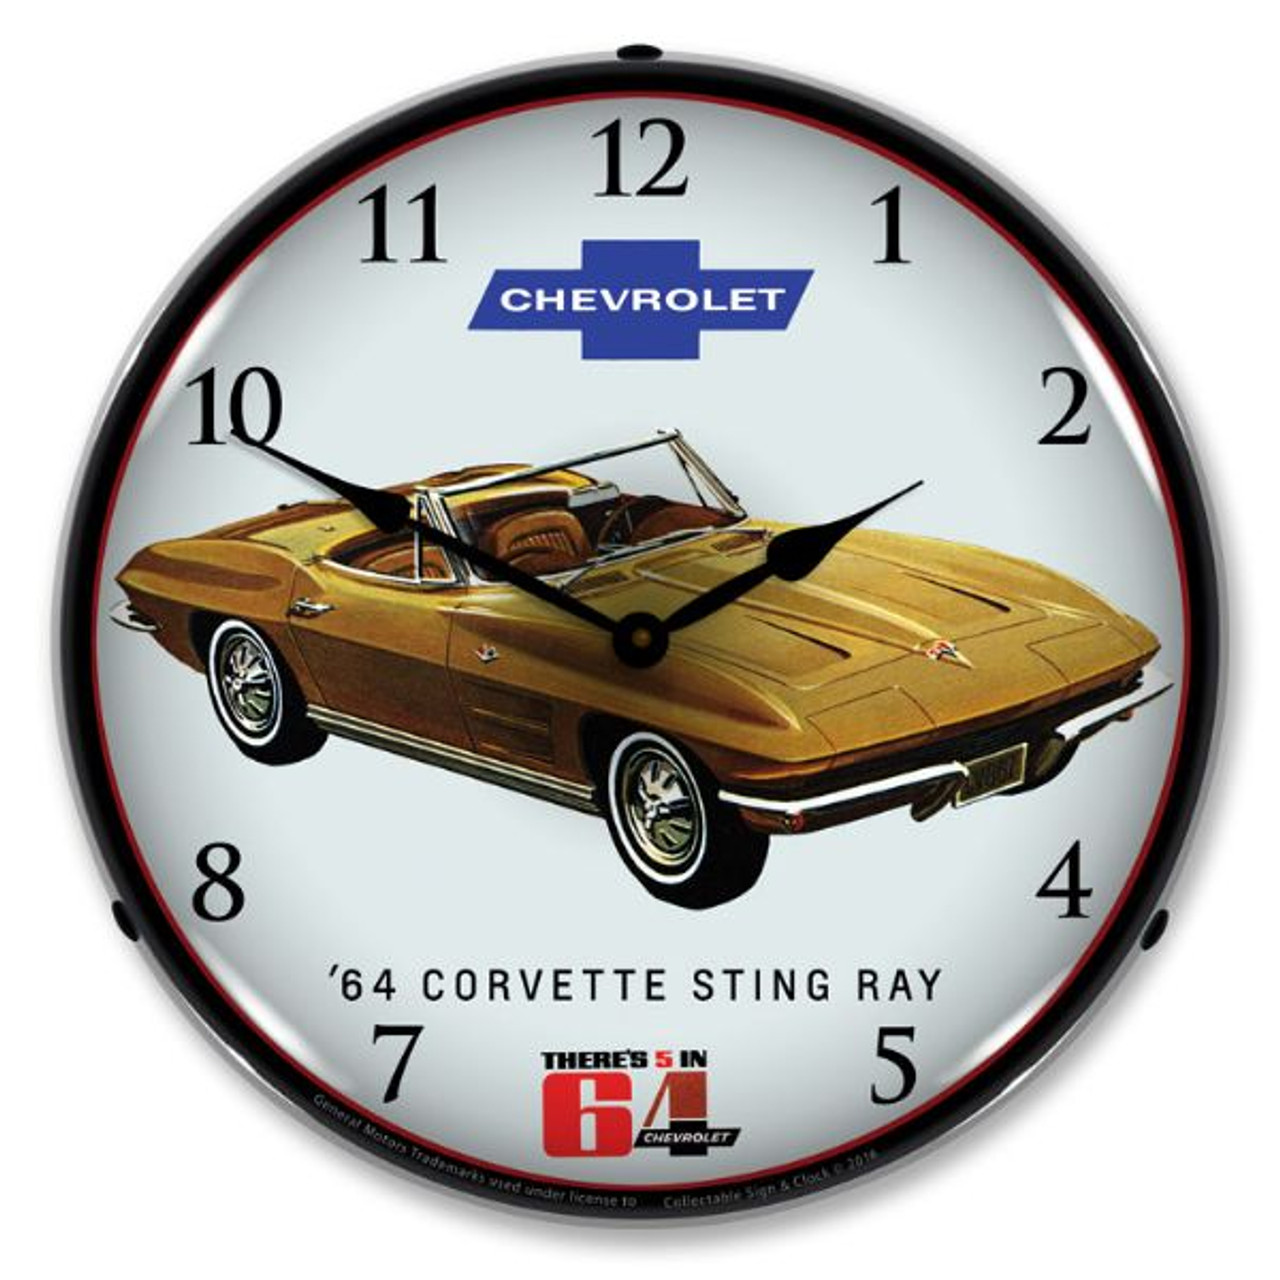 1964 Corvette Sting Ray Clock